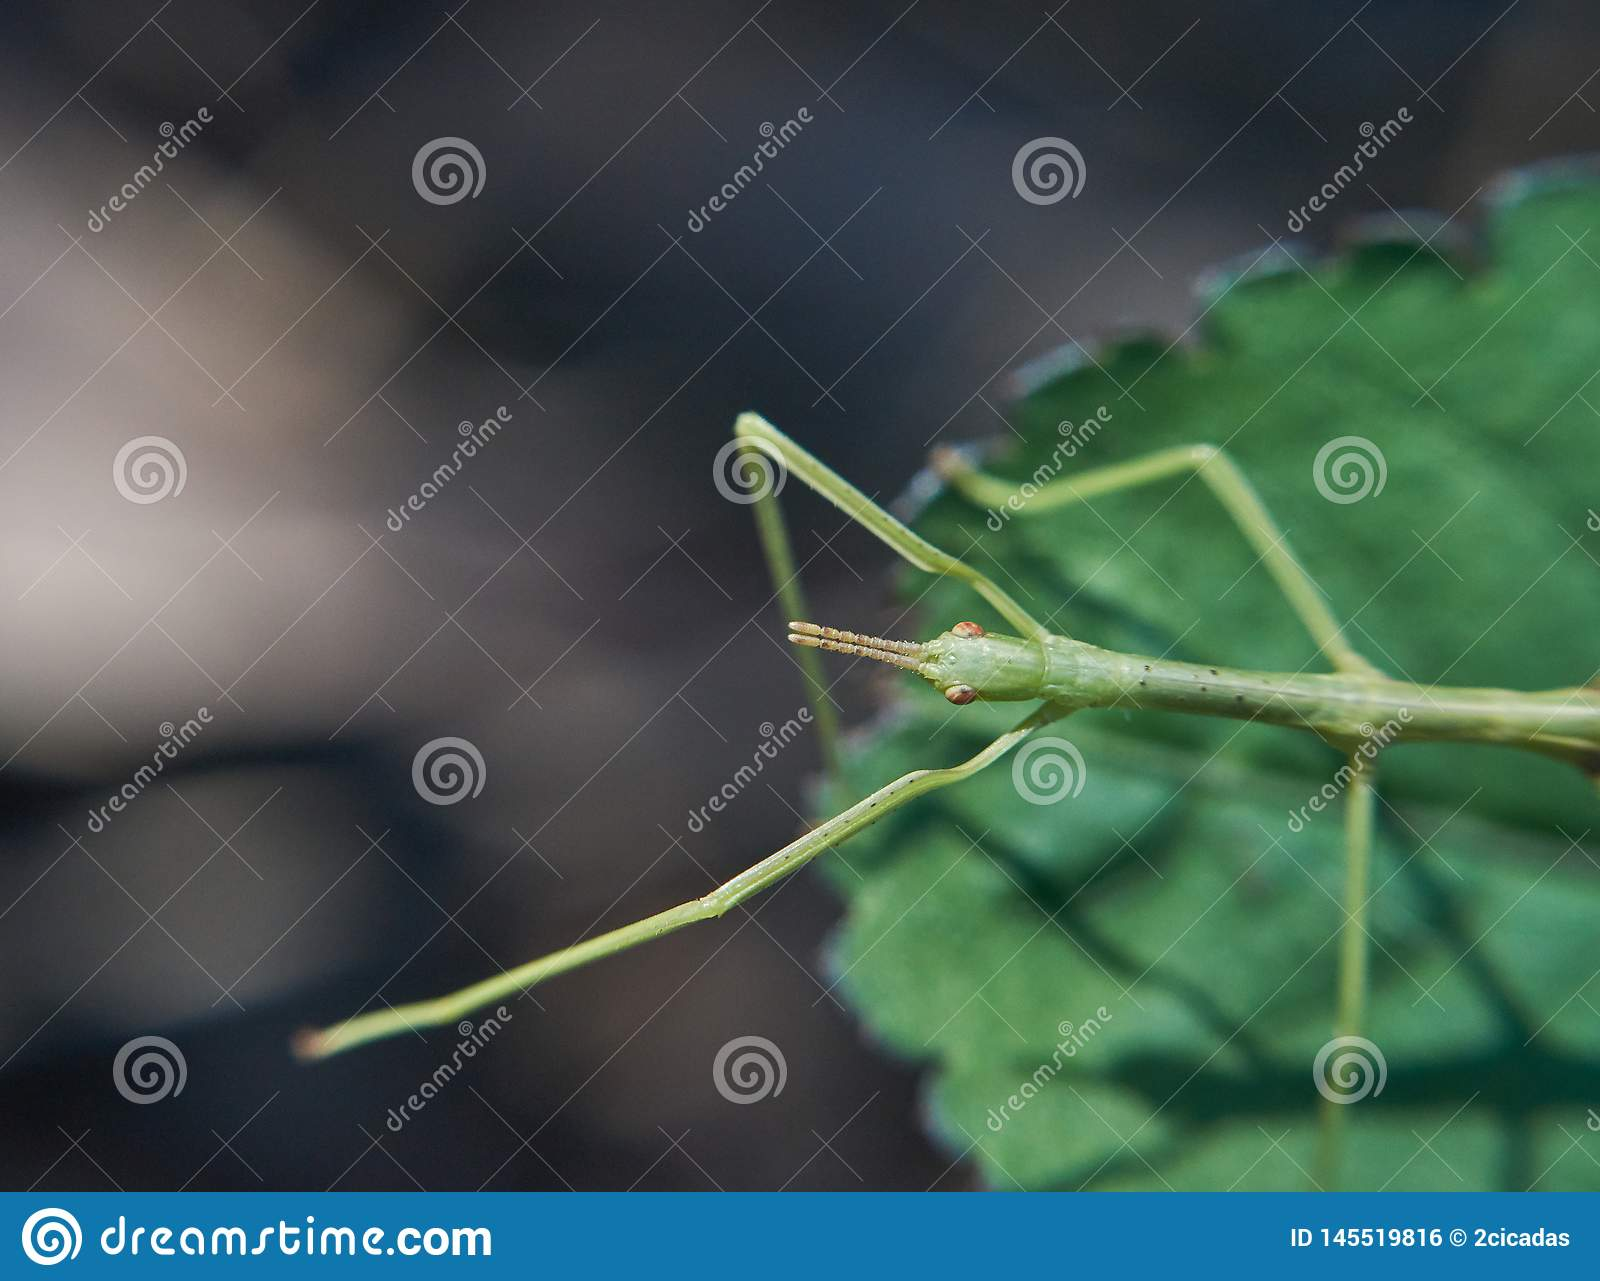 Stick Insect(Phasmatodea) on Leaf - Reaching Out